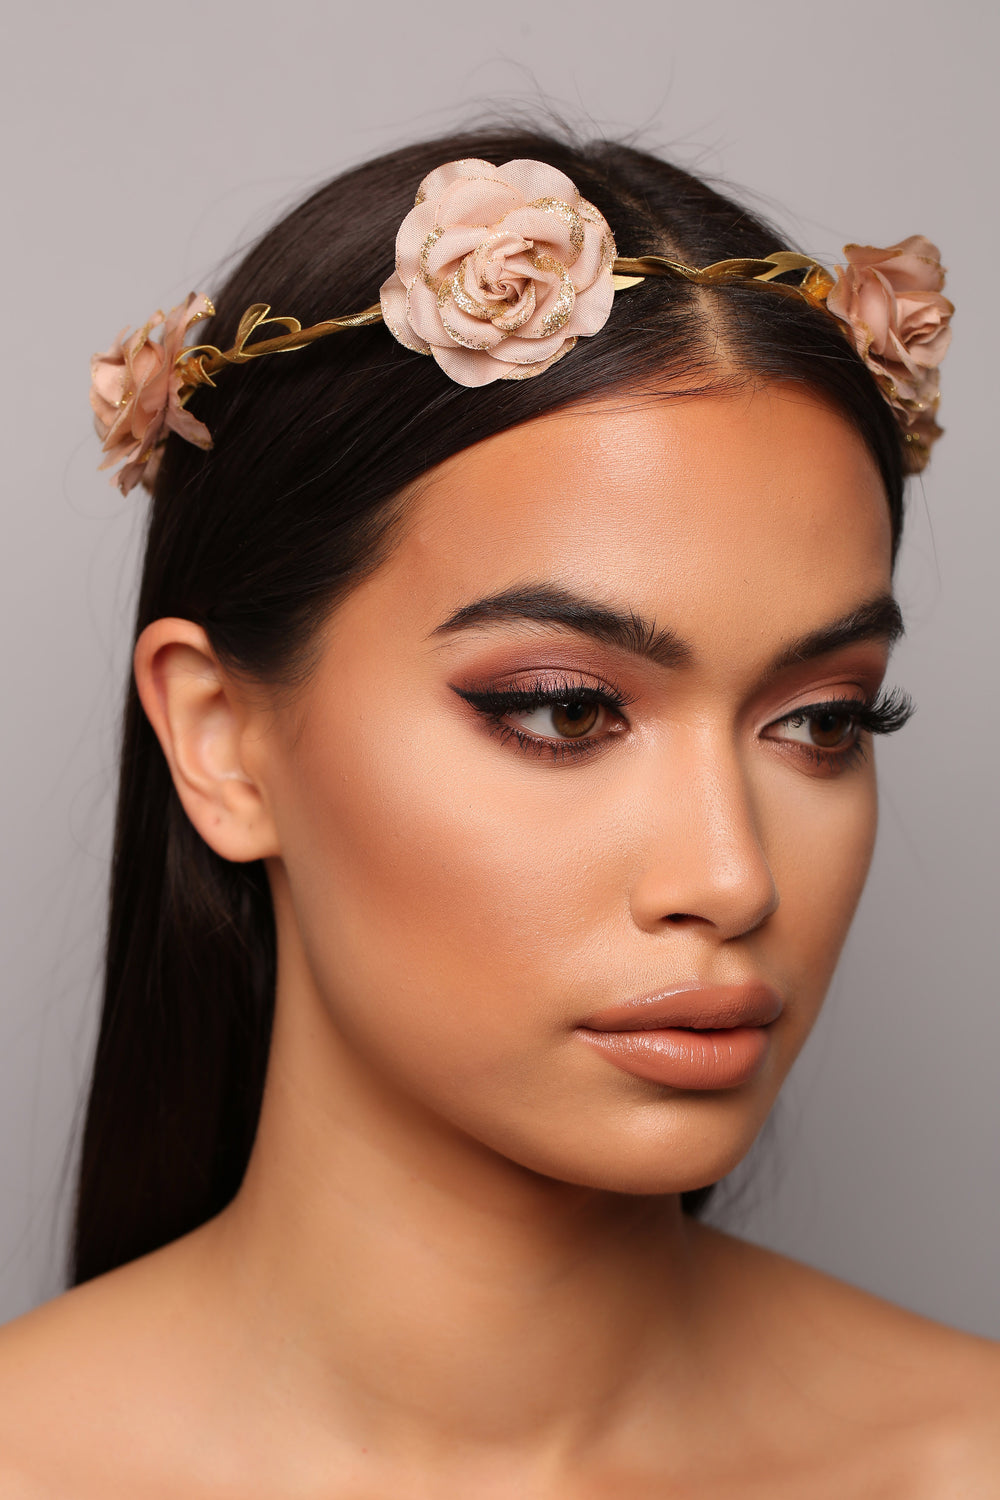 Rose To The Top Flower Crown - Beige